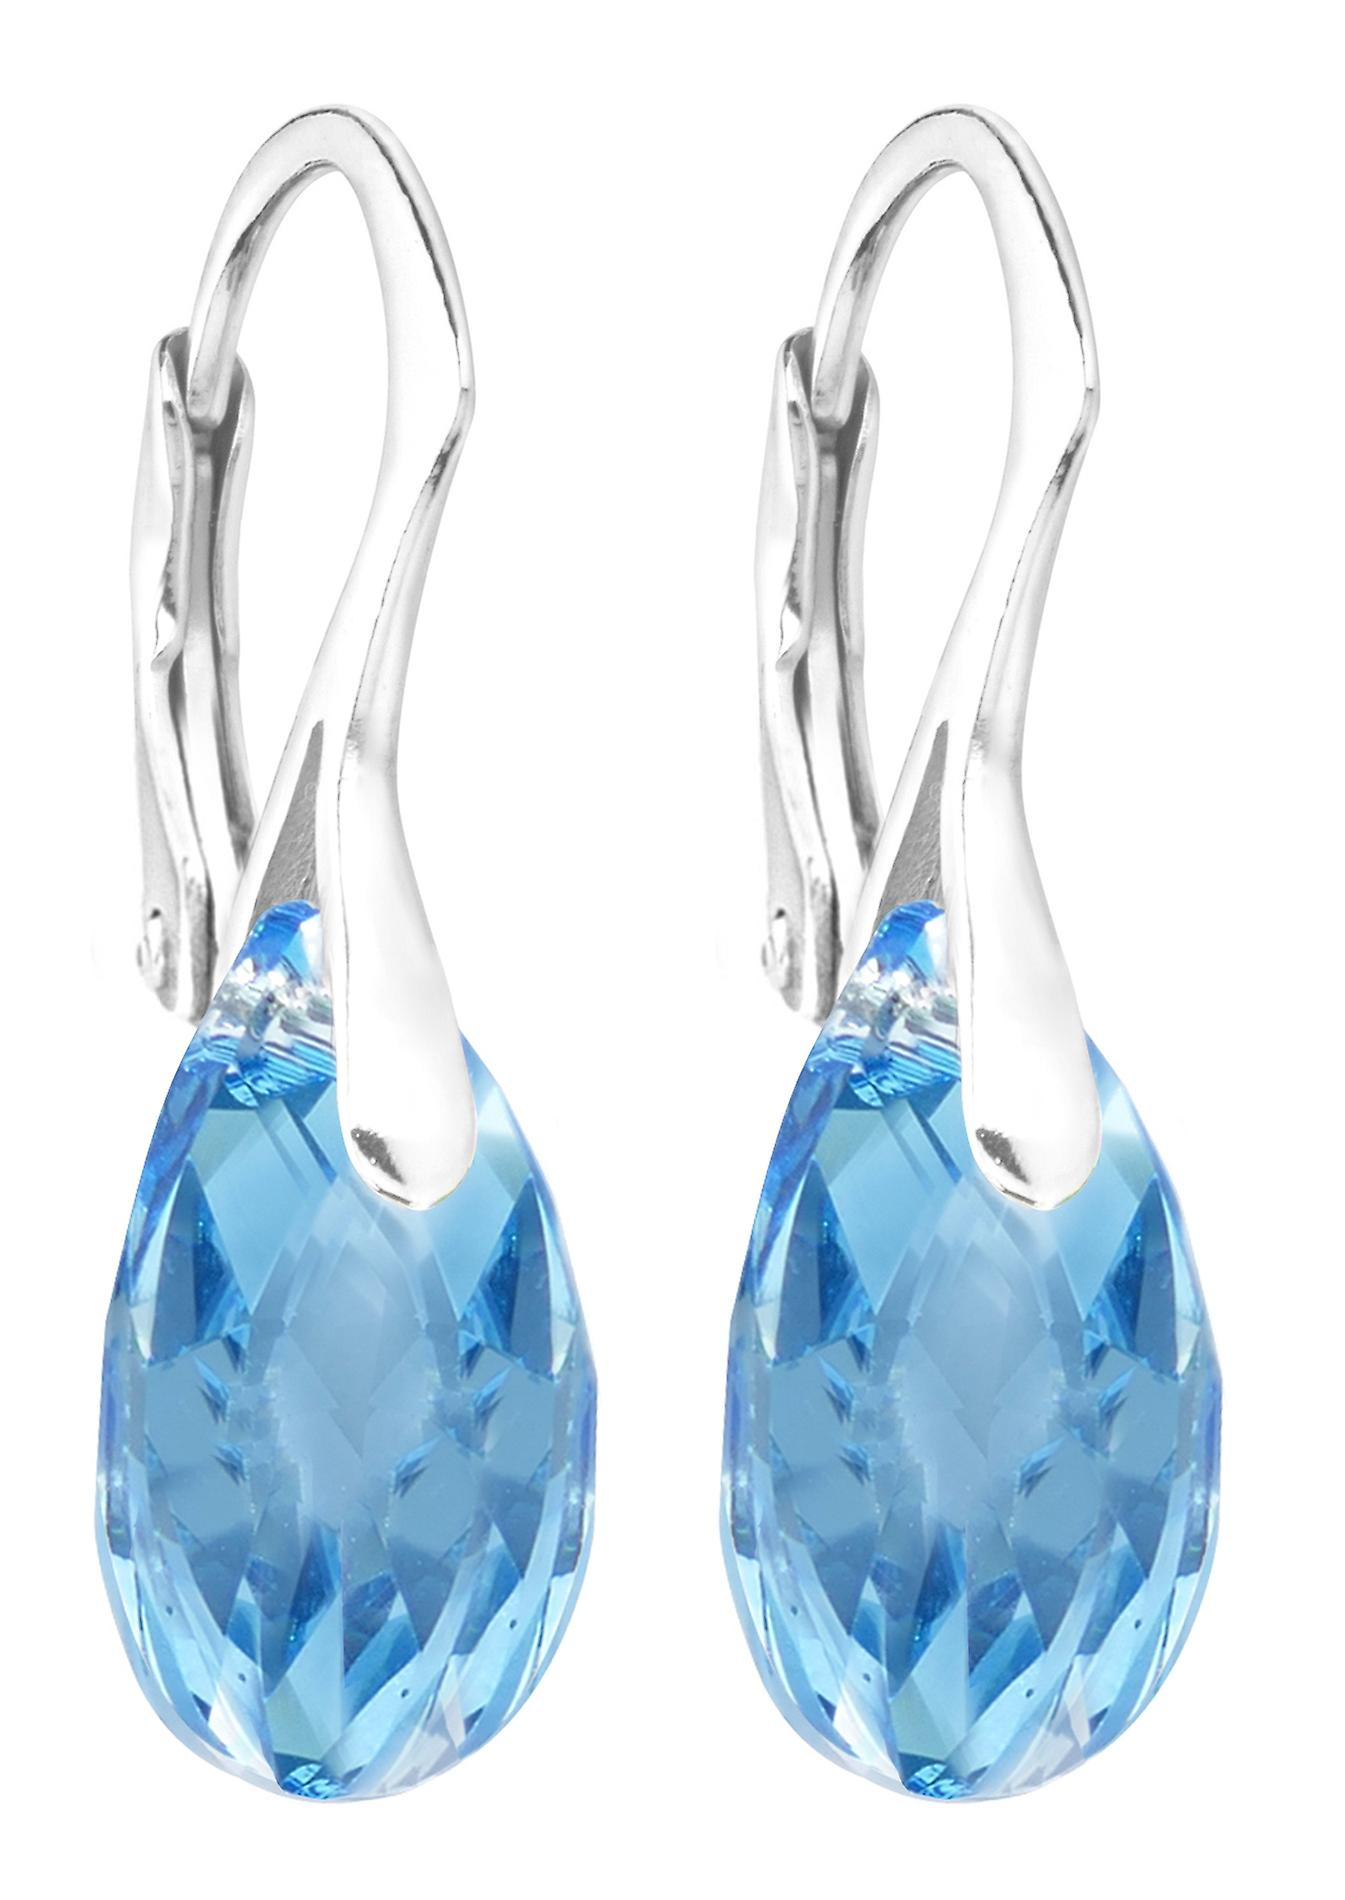 Women's Aquamarine 16mm Crystals From SwarovskiHand Crafted Earrings